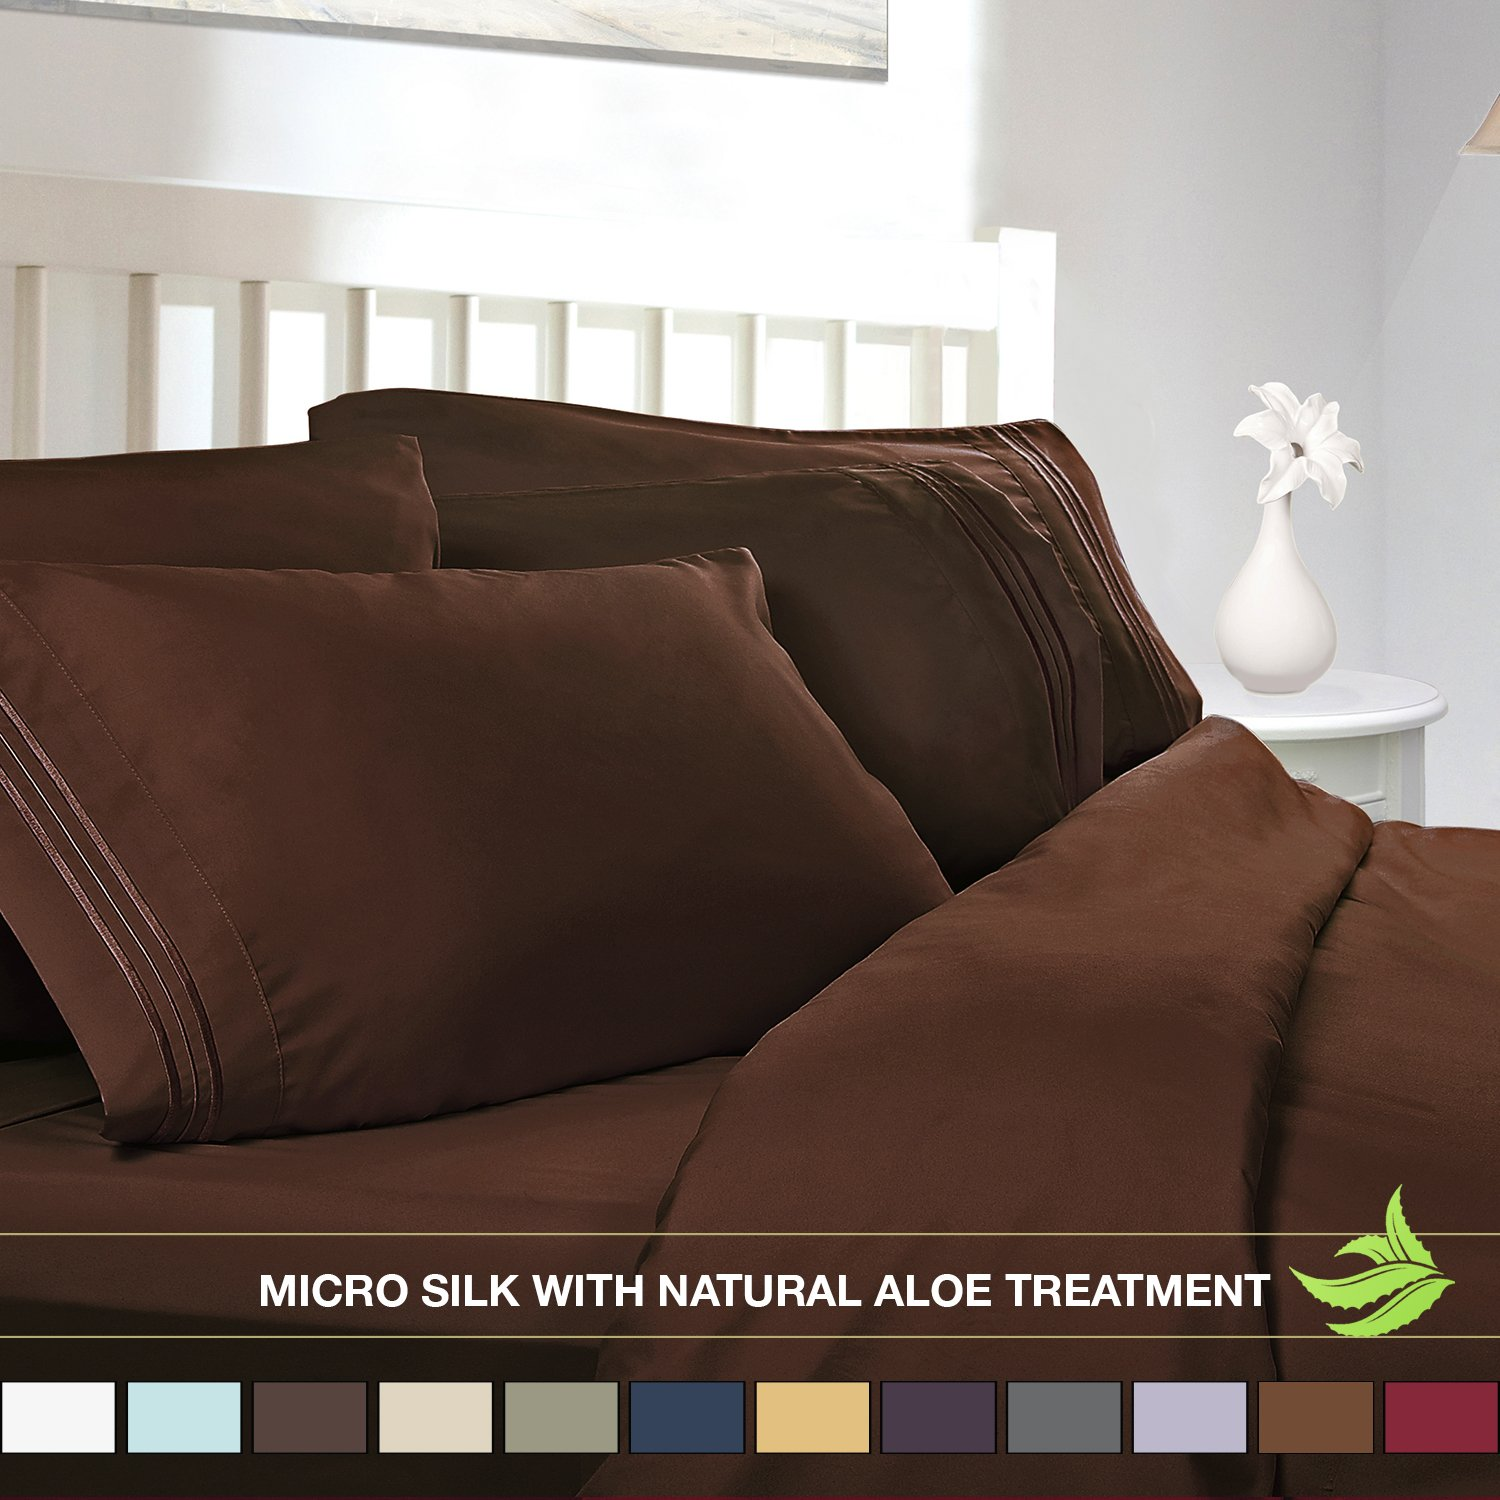 amazoncom luxury bed sheet set soft micro silk sheets queen size chocolate brown with pure natural aloe vera skin soothing treatment